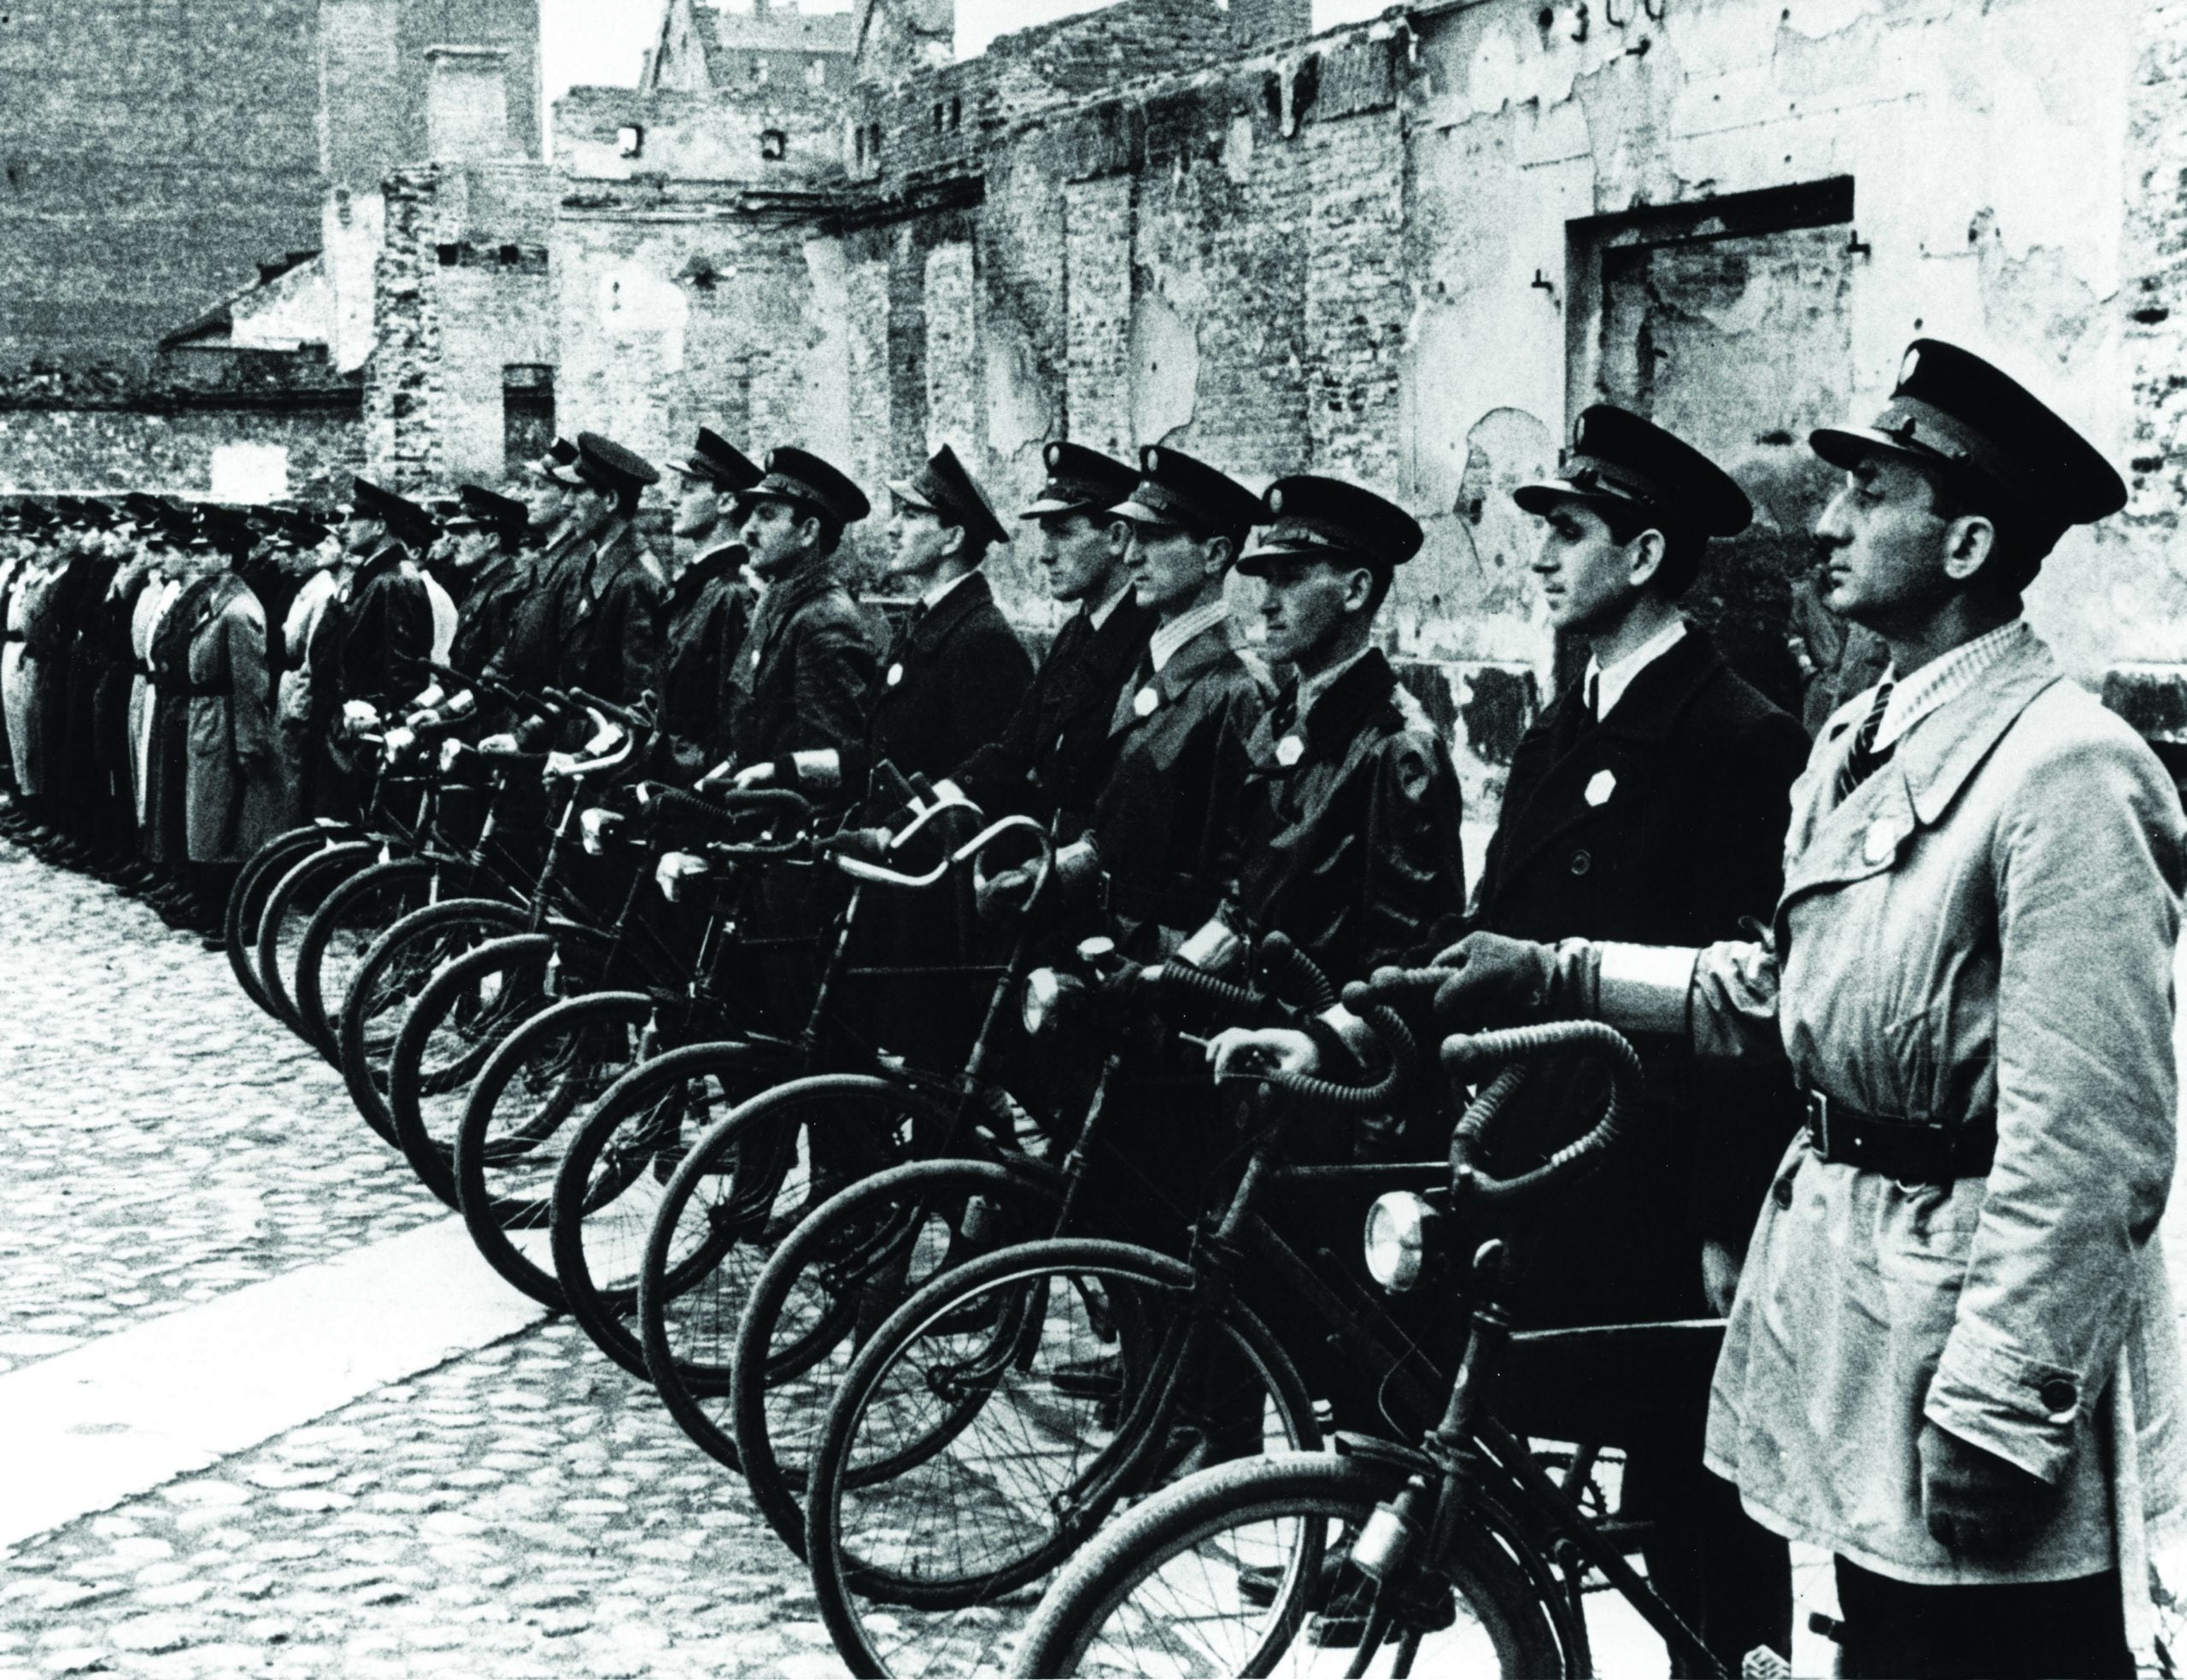 Mass murder by muddle: a new history of the Holocaust